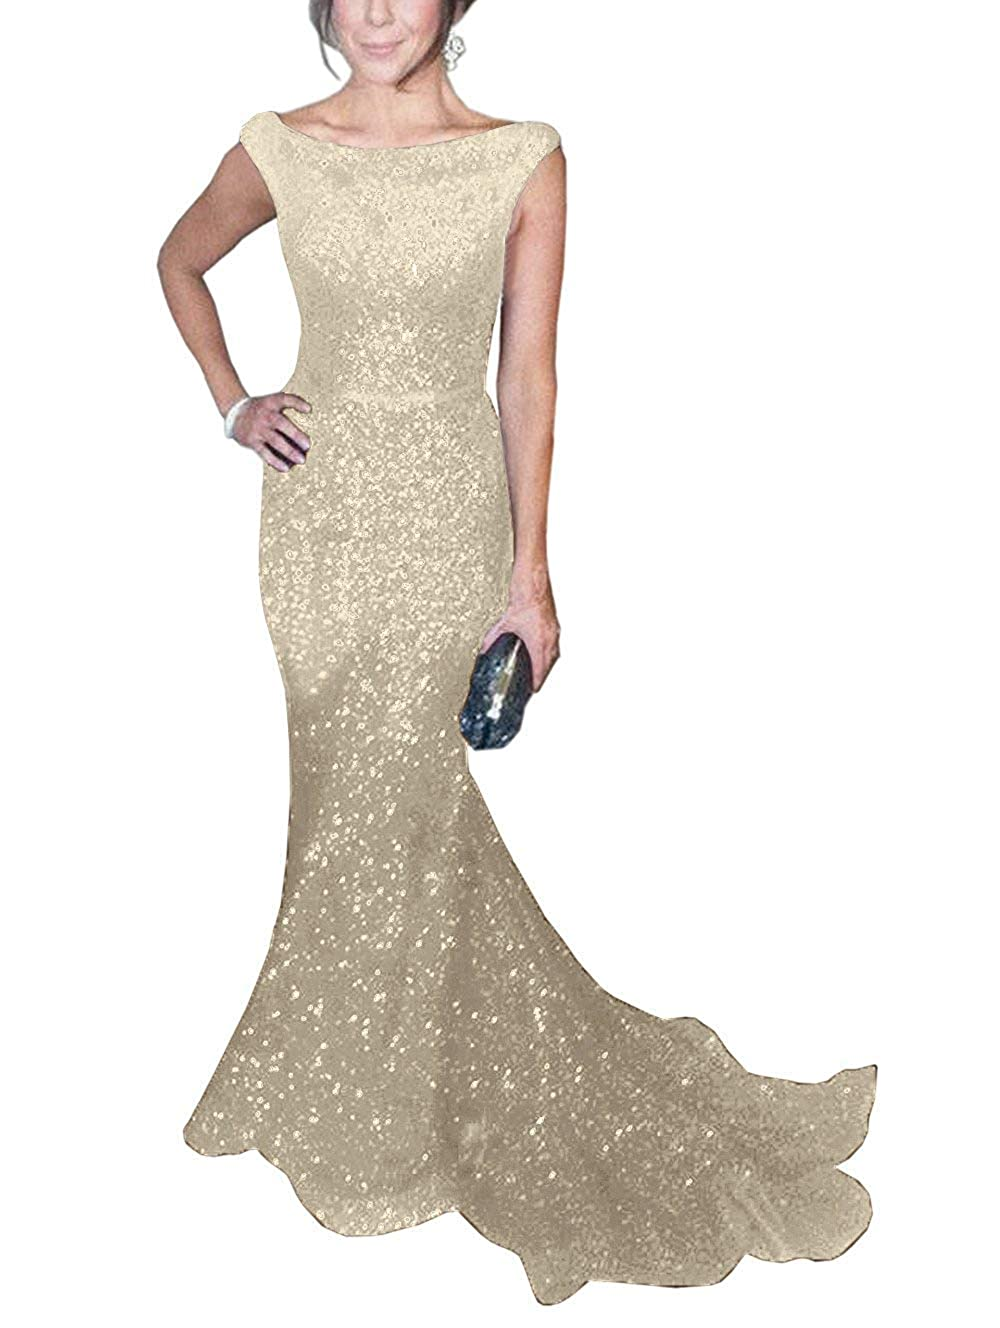 Champagne ToonySume Women's Mermaid Sequined Prom Gown Formal Evening Dress for Wedding